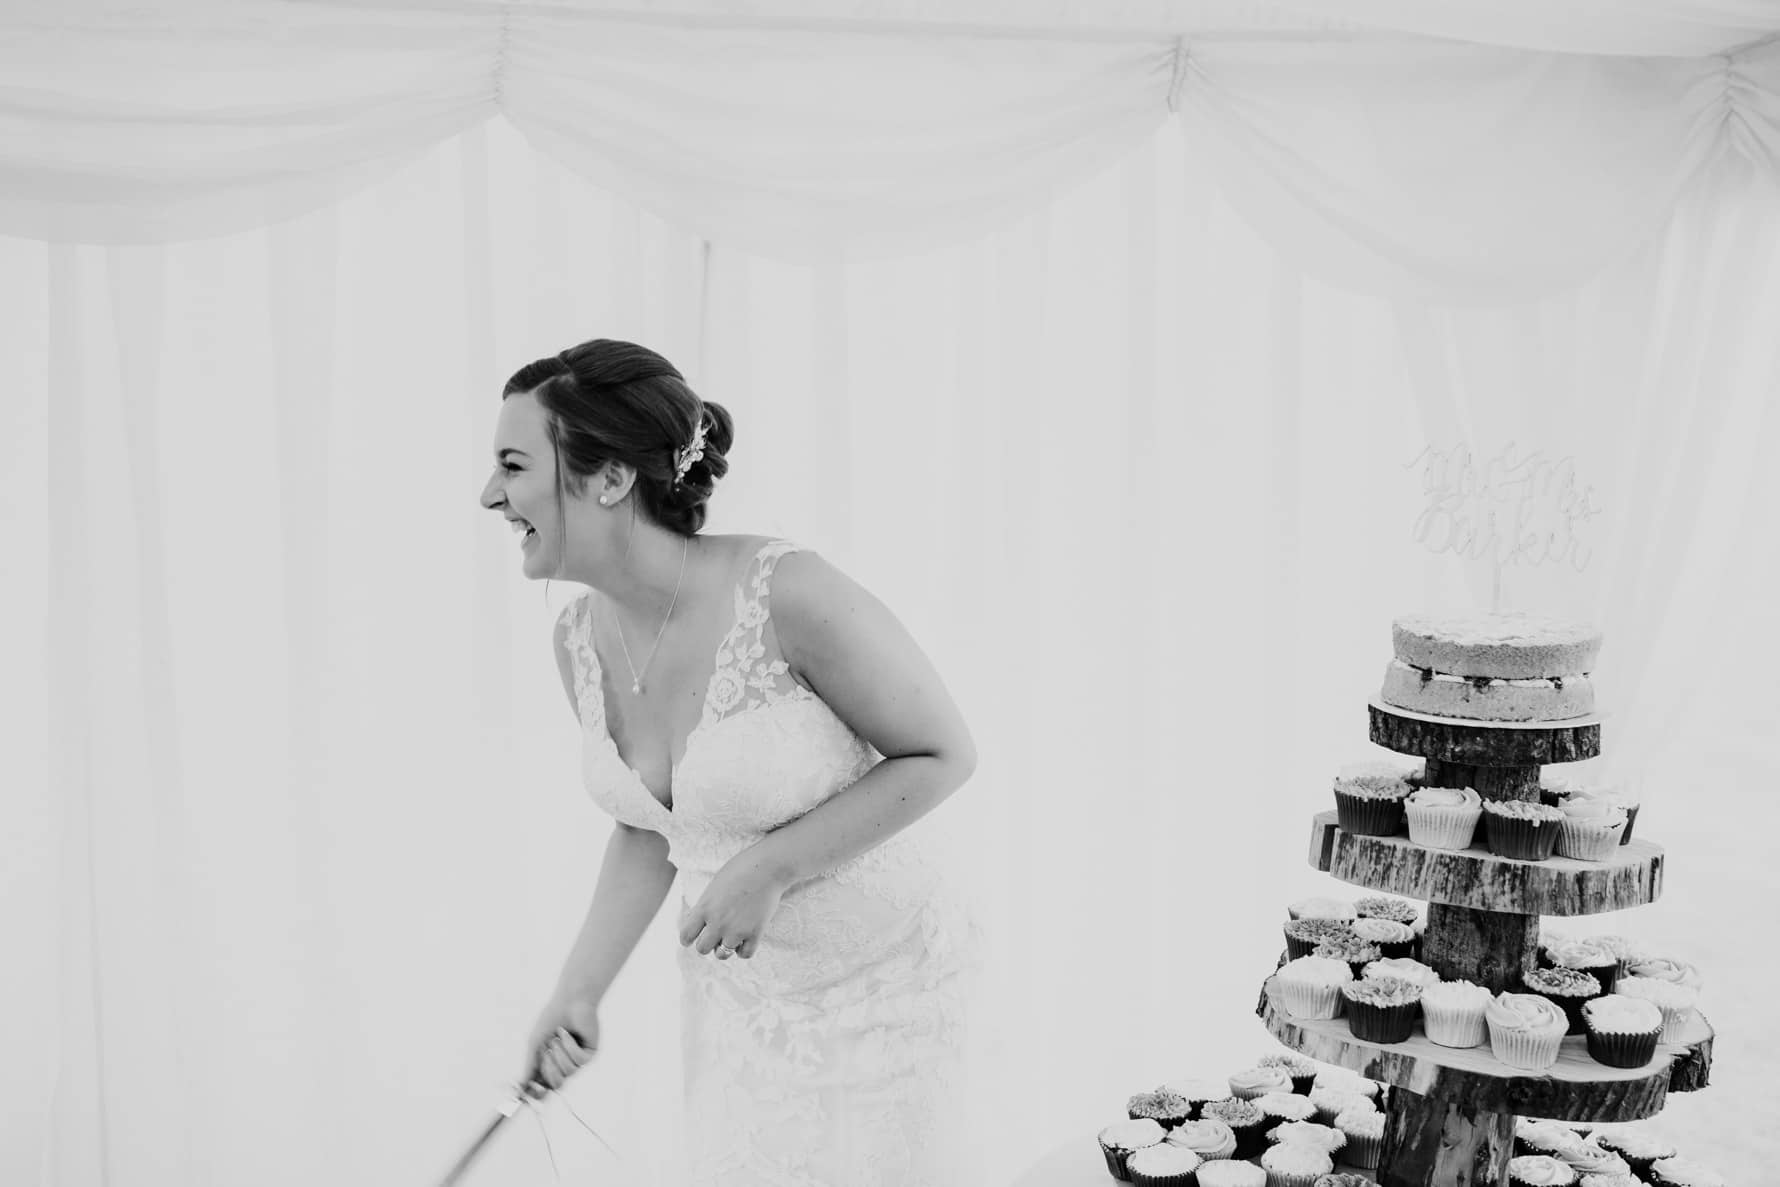 A bride just before she cuts her wedding cake - laughing